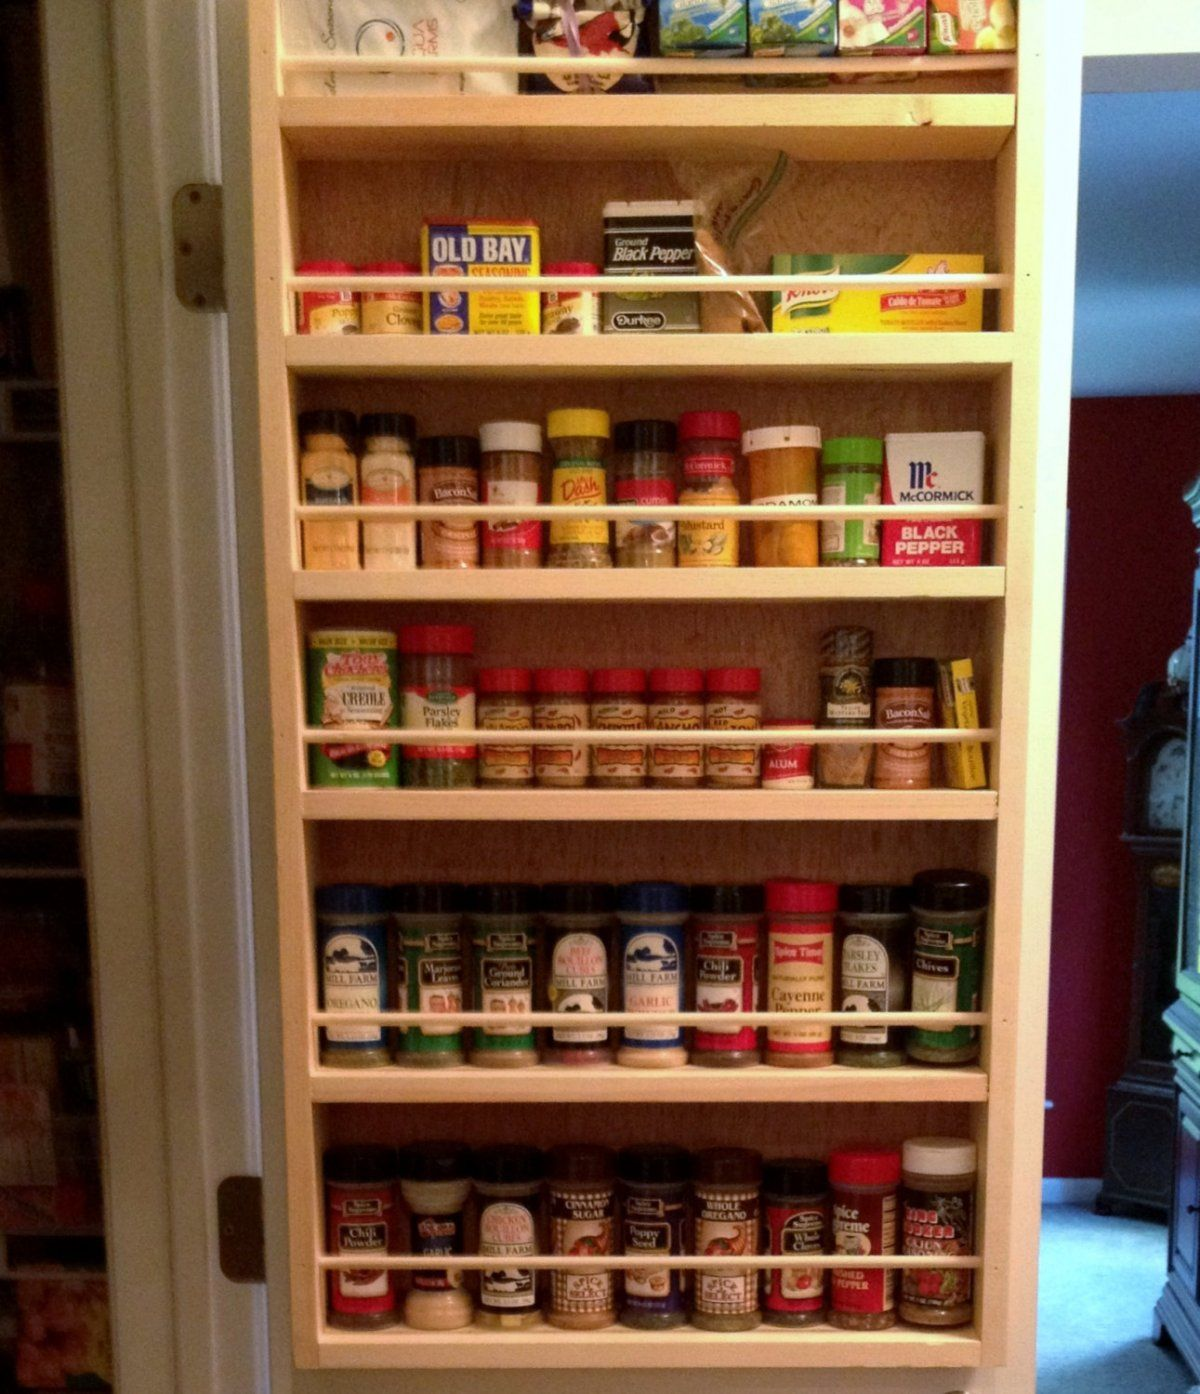 Spruce Up Your Kitchen With These Cabinet Door Styles: Spice Rack On Inside Of Pantry Doors.